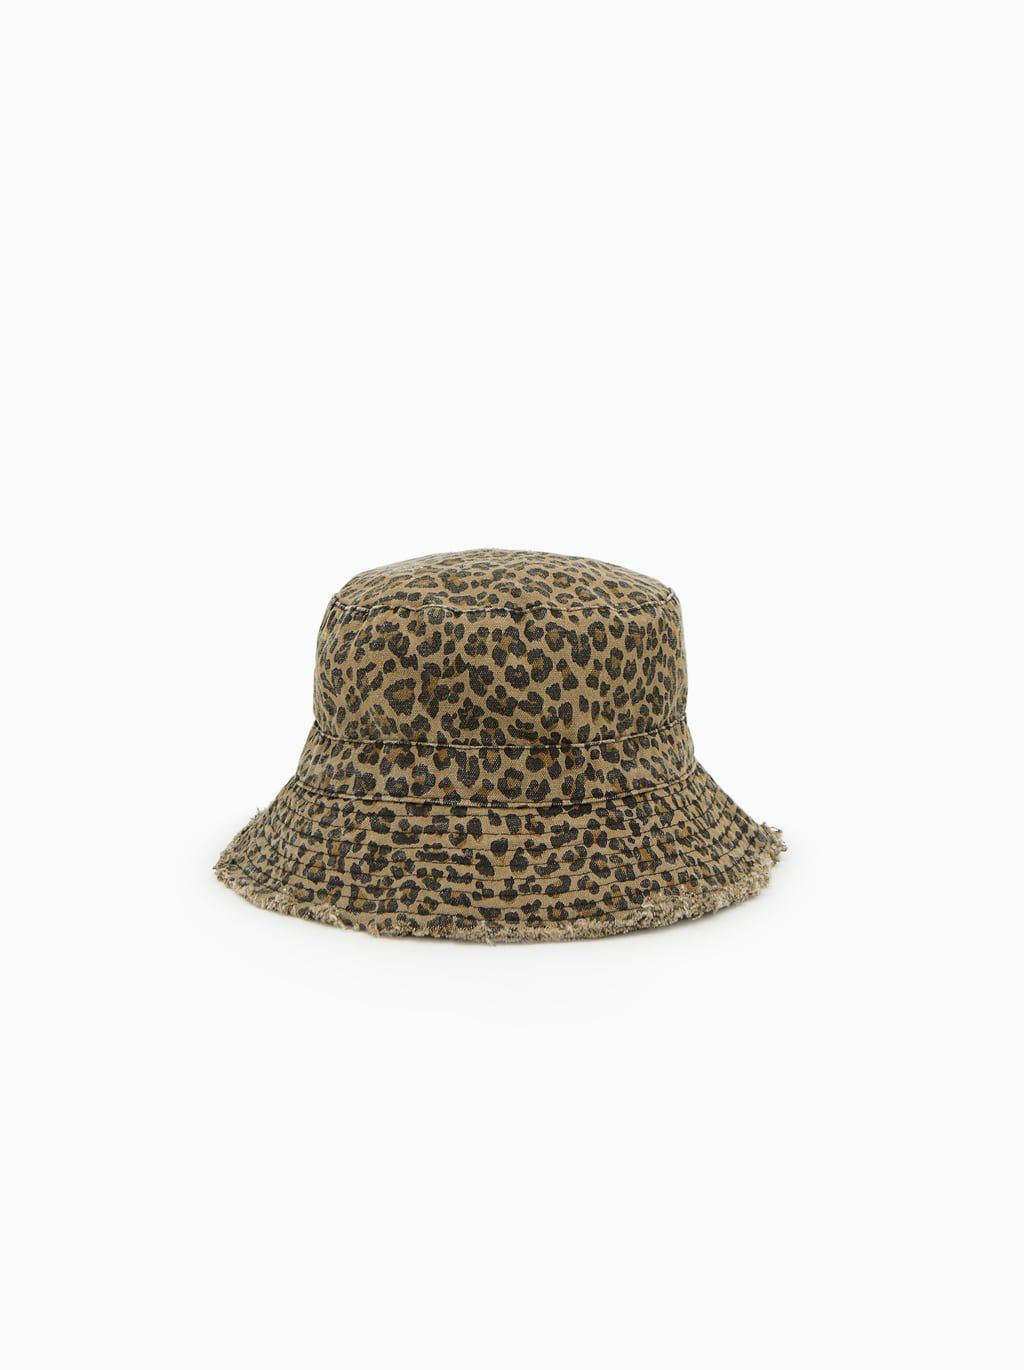 9e3f634b Image 1 of FRAYED EDGE LEOPARD HAT from Zara Kids Hats, Baby Hats, Bonnets